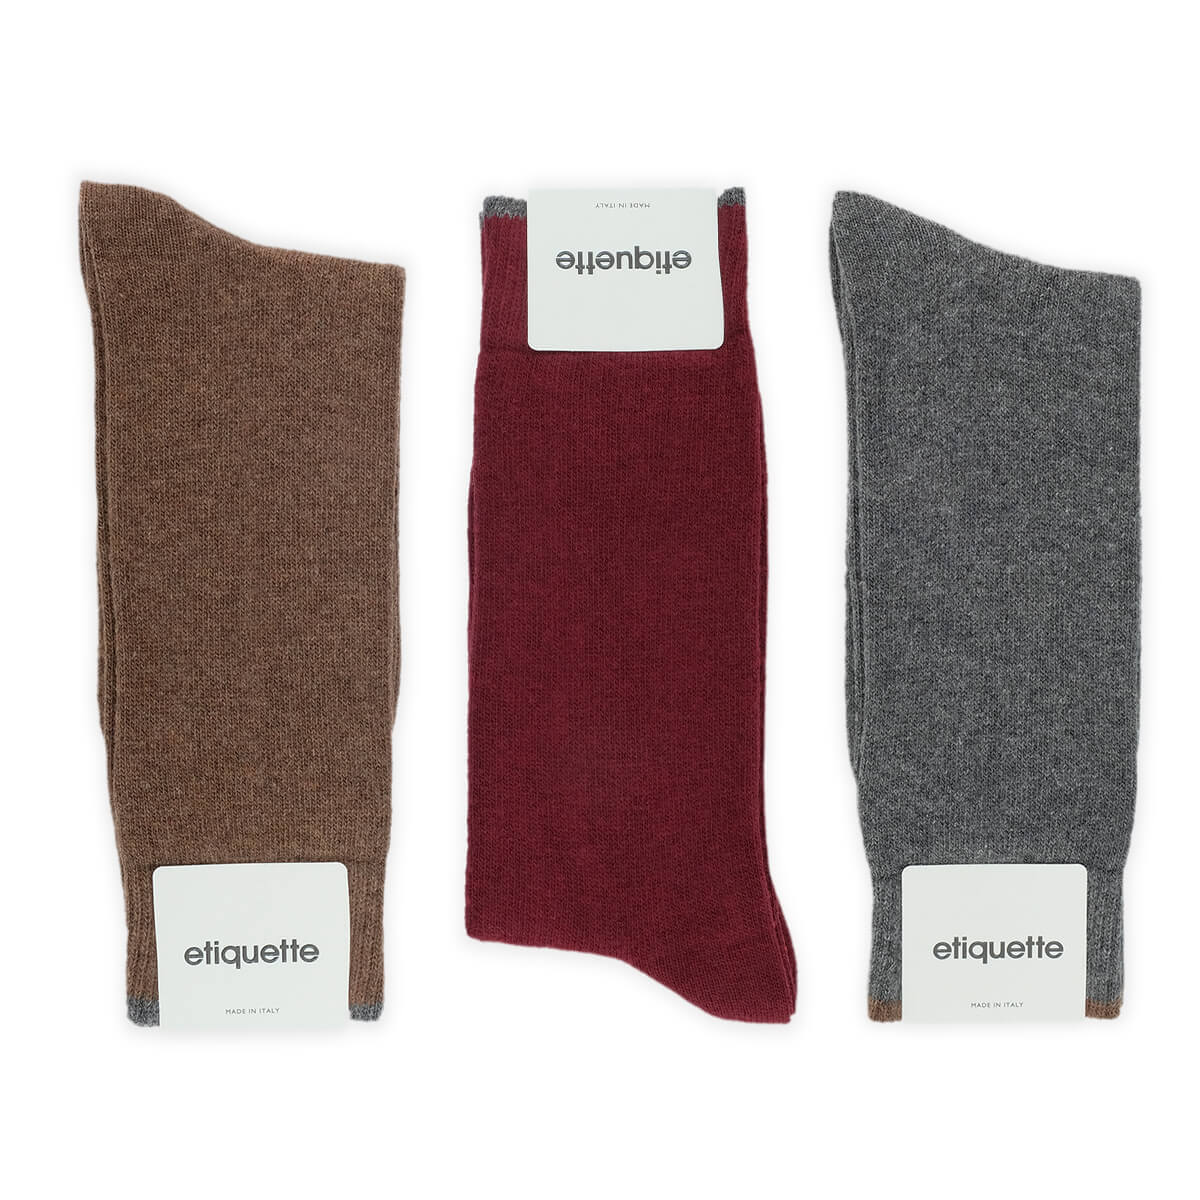 Mens Socks - Gentleman's Cashmere Men's Socks Gift Box - Multi⎪Etiquette Clothiers